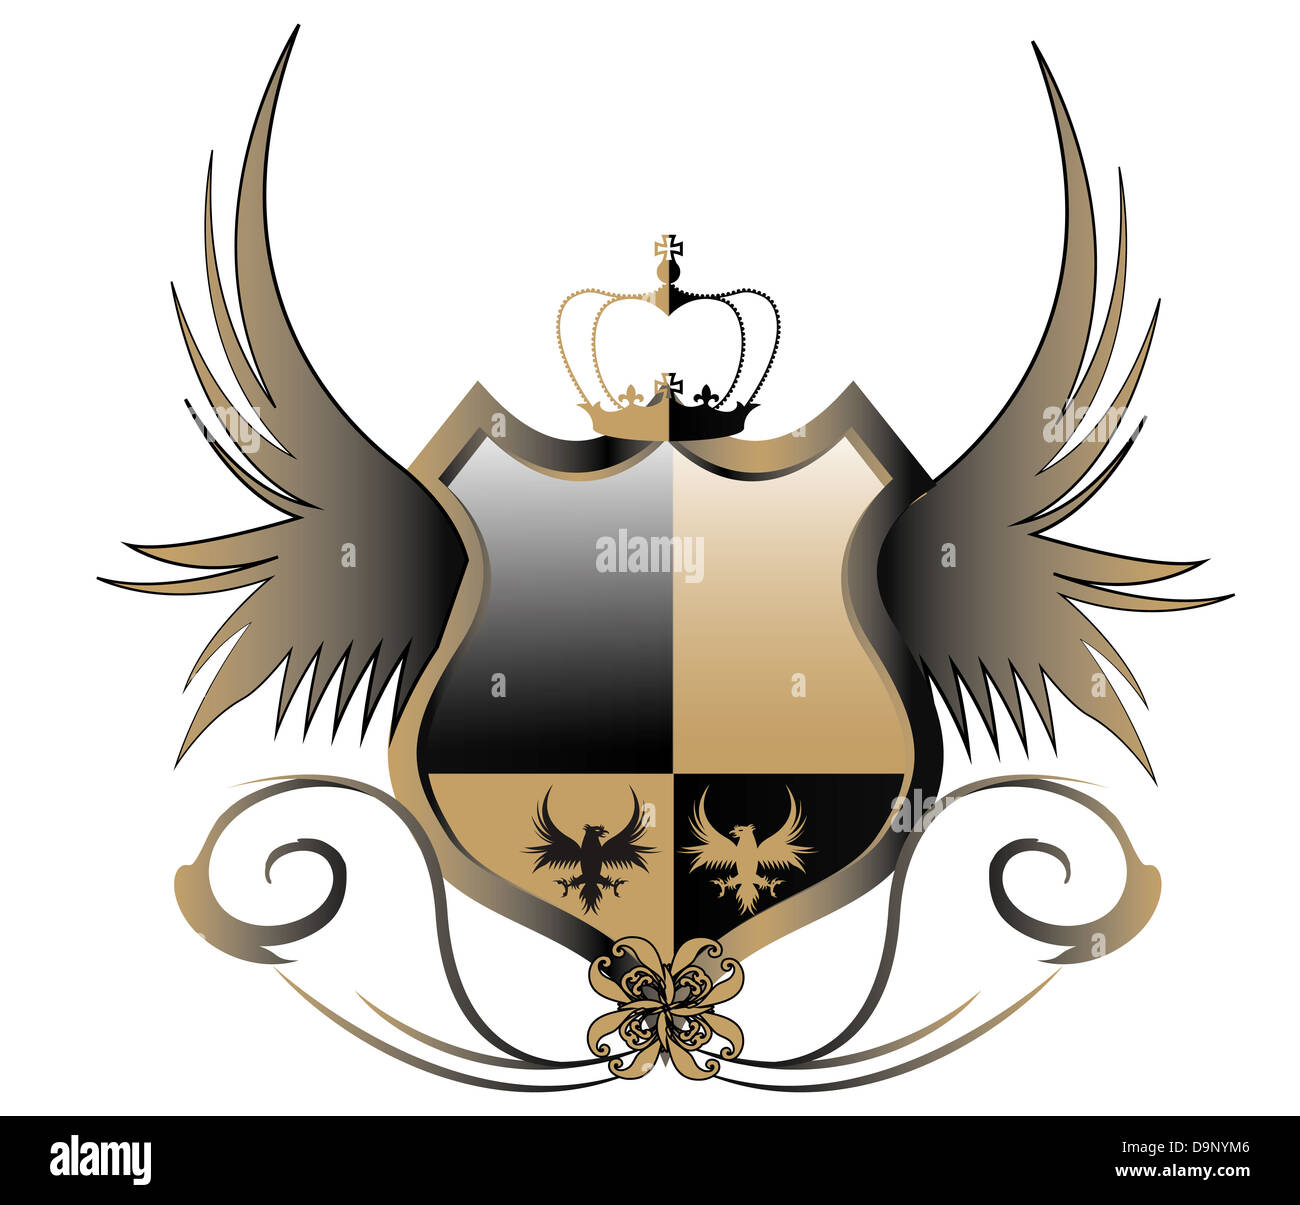 crest crown wings royal knight chivalrous fashionable shield